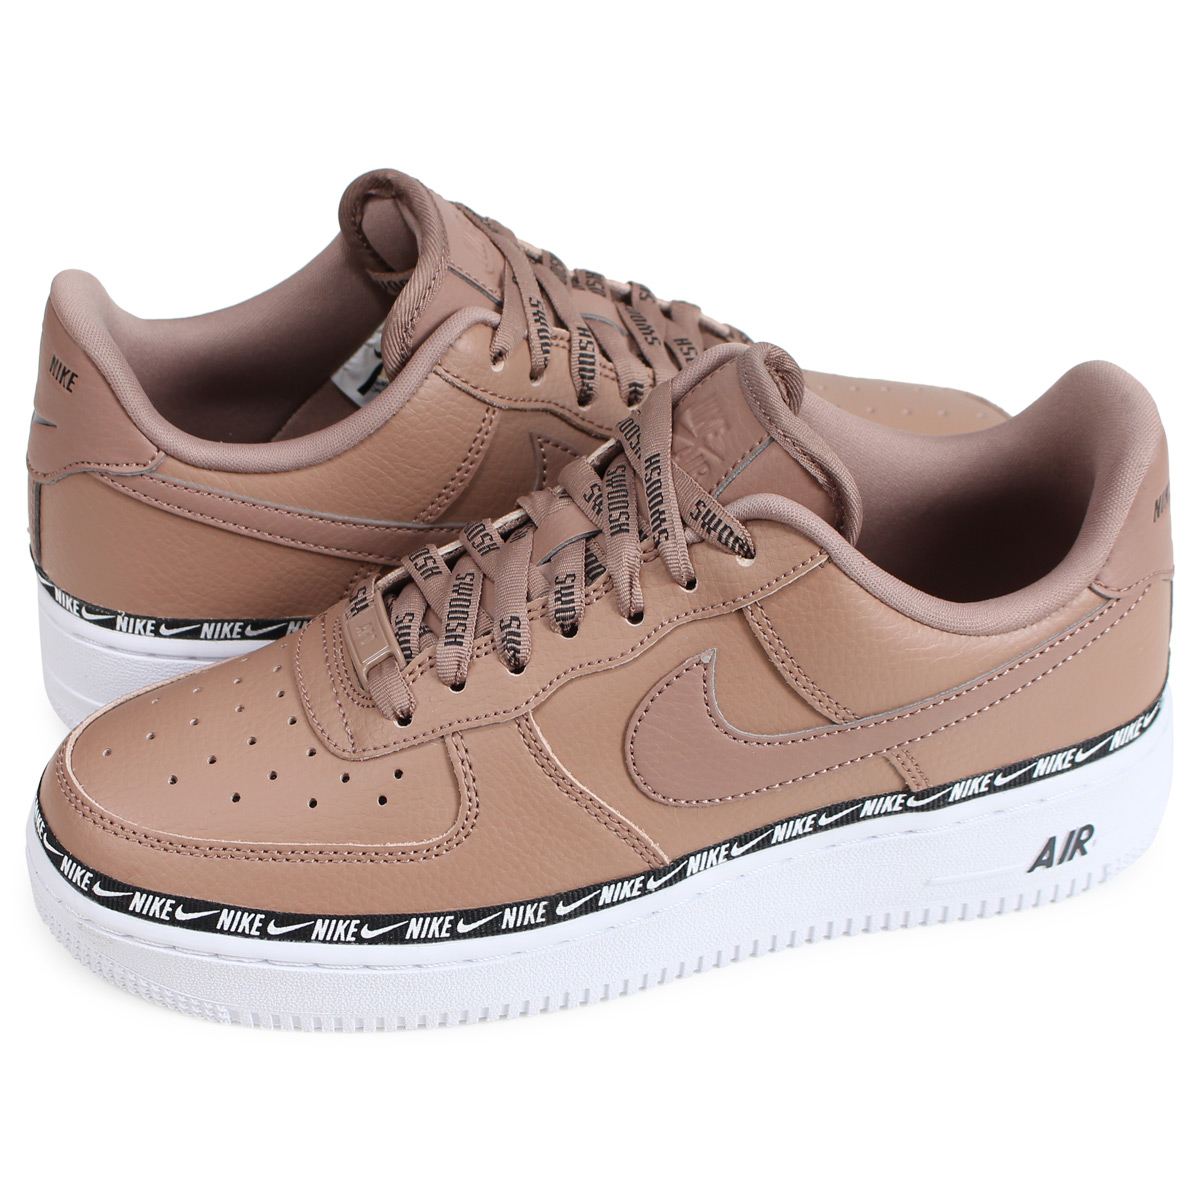 Force 07 Brown1210 Shinnyu Premium Nike Air 1 Lady's Sneakers Ah6827 201 Load1811 Se Men's Wmns 8OPwkn0